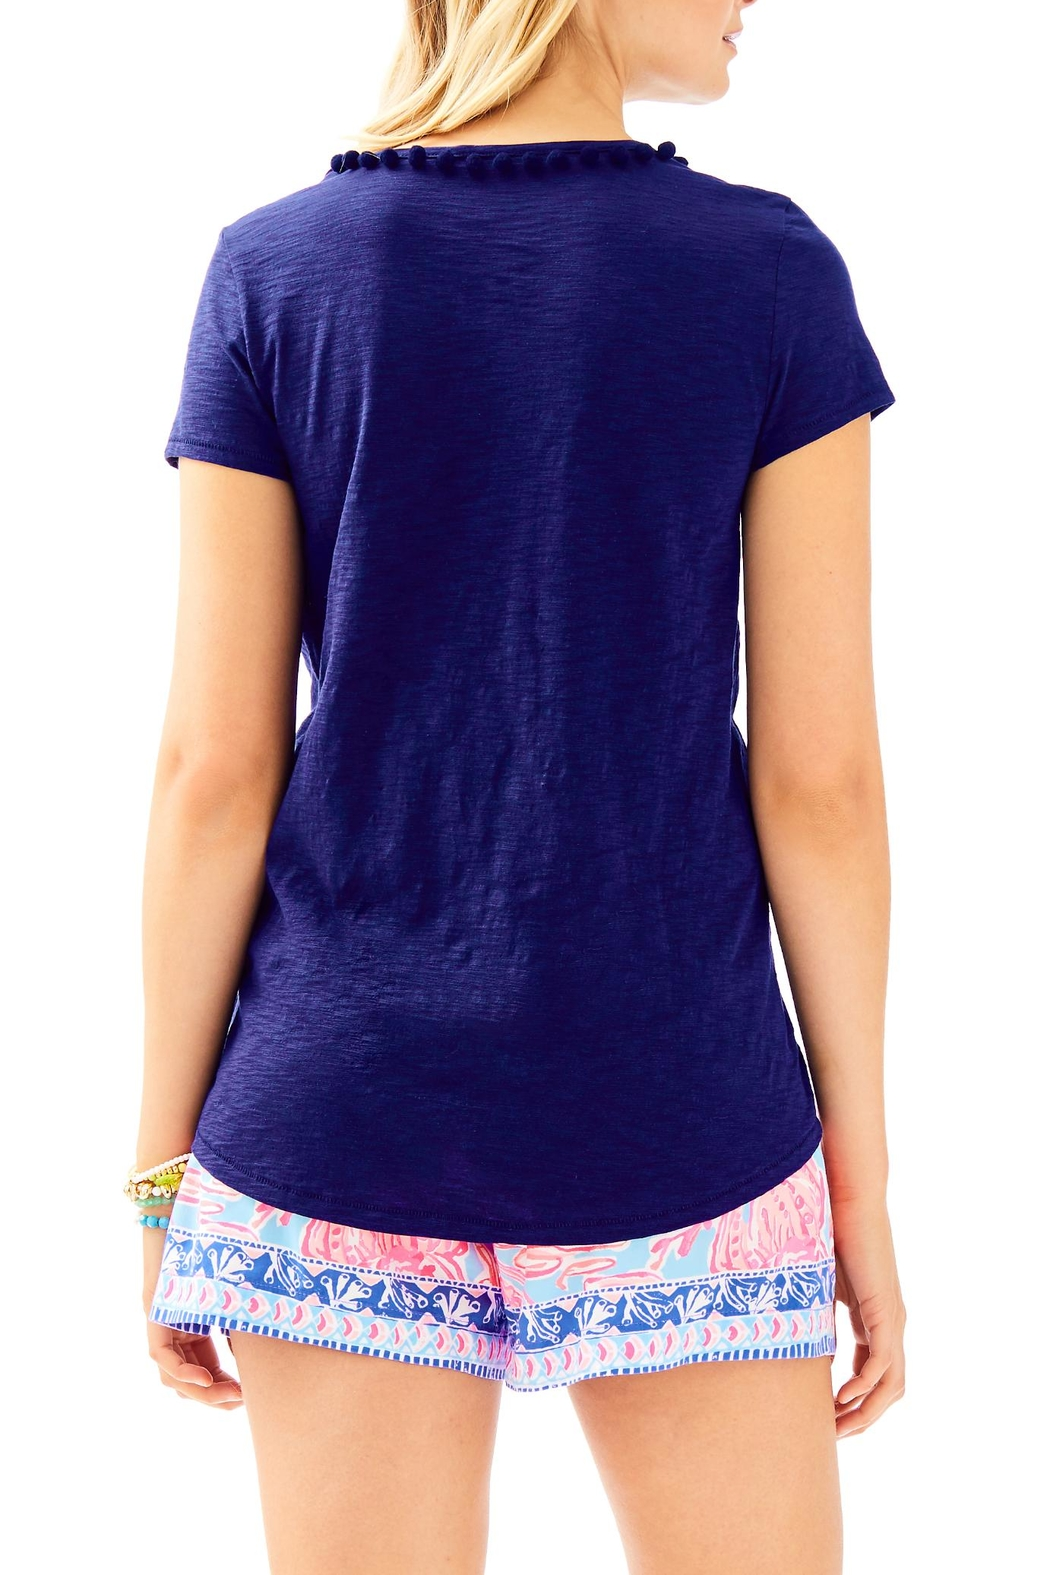 Lilly Pulitzer Etta Top - Front Full Image